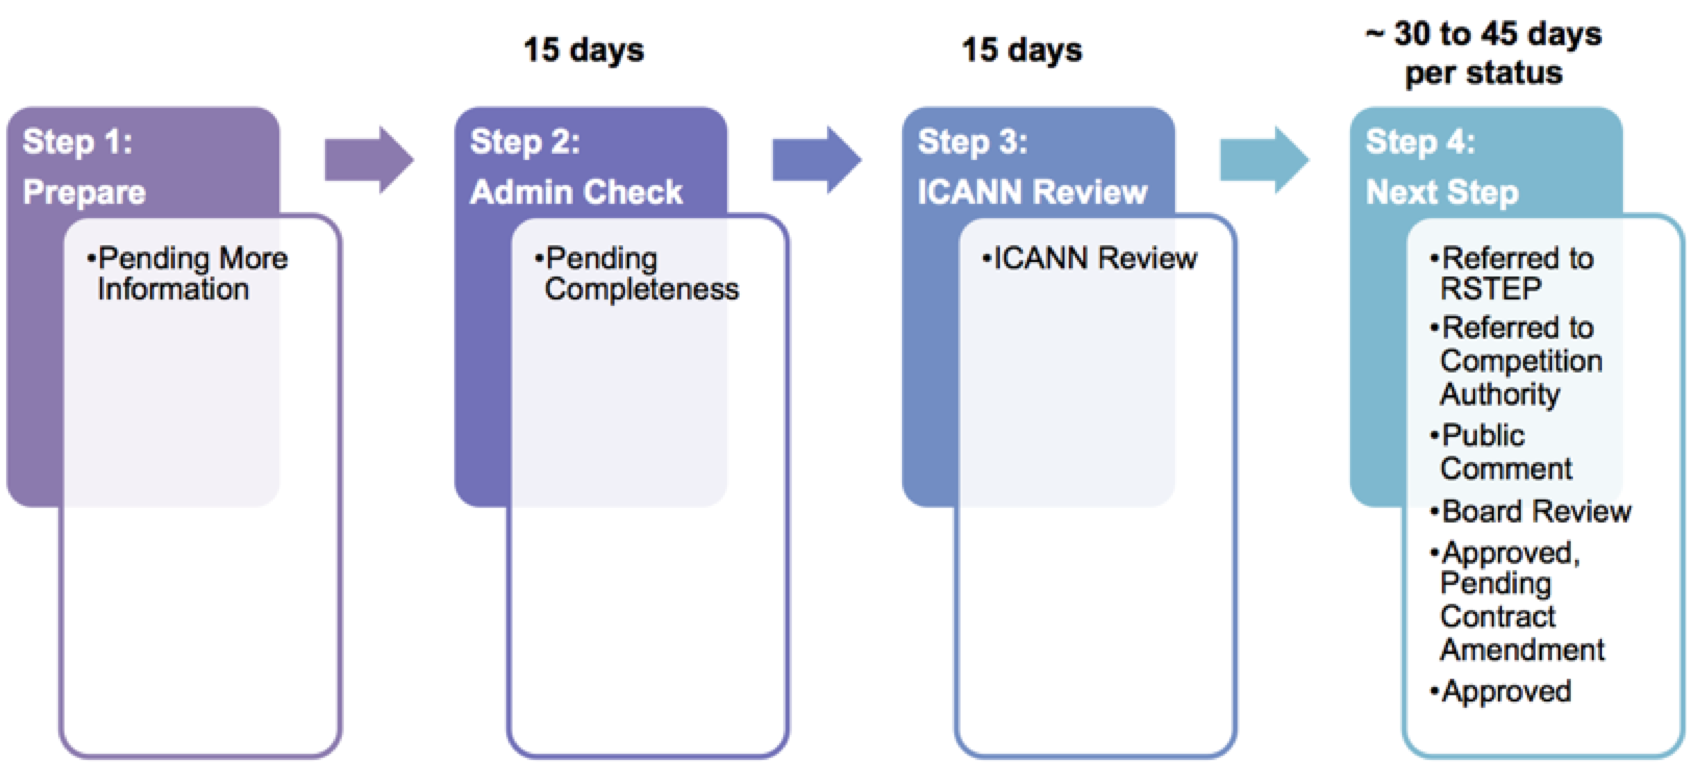 Flowchart of Overview of RSEP Process Steps and Statuses